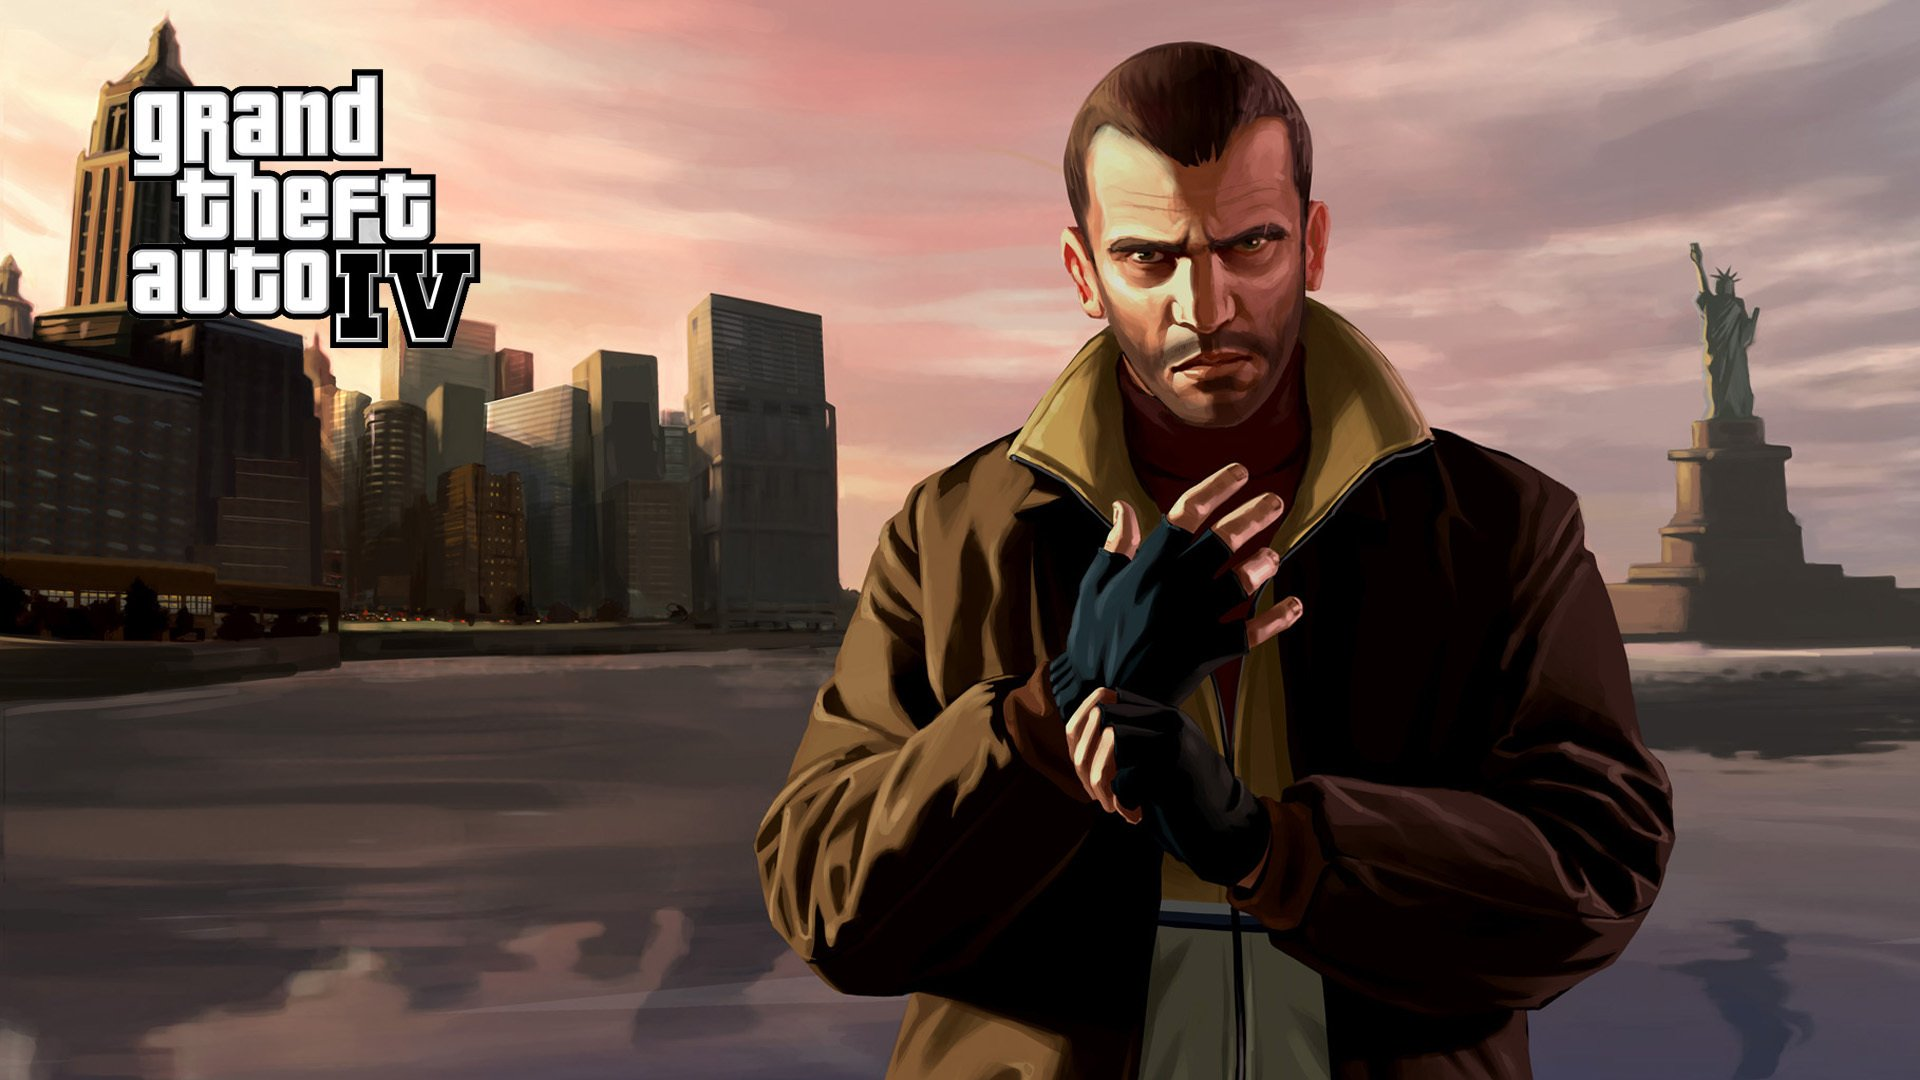 Grand Theft Auto IV et le titre Soviet Connection